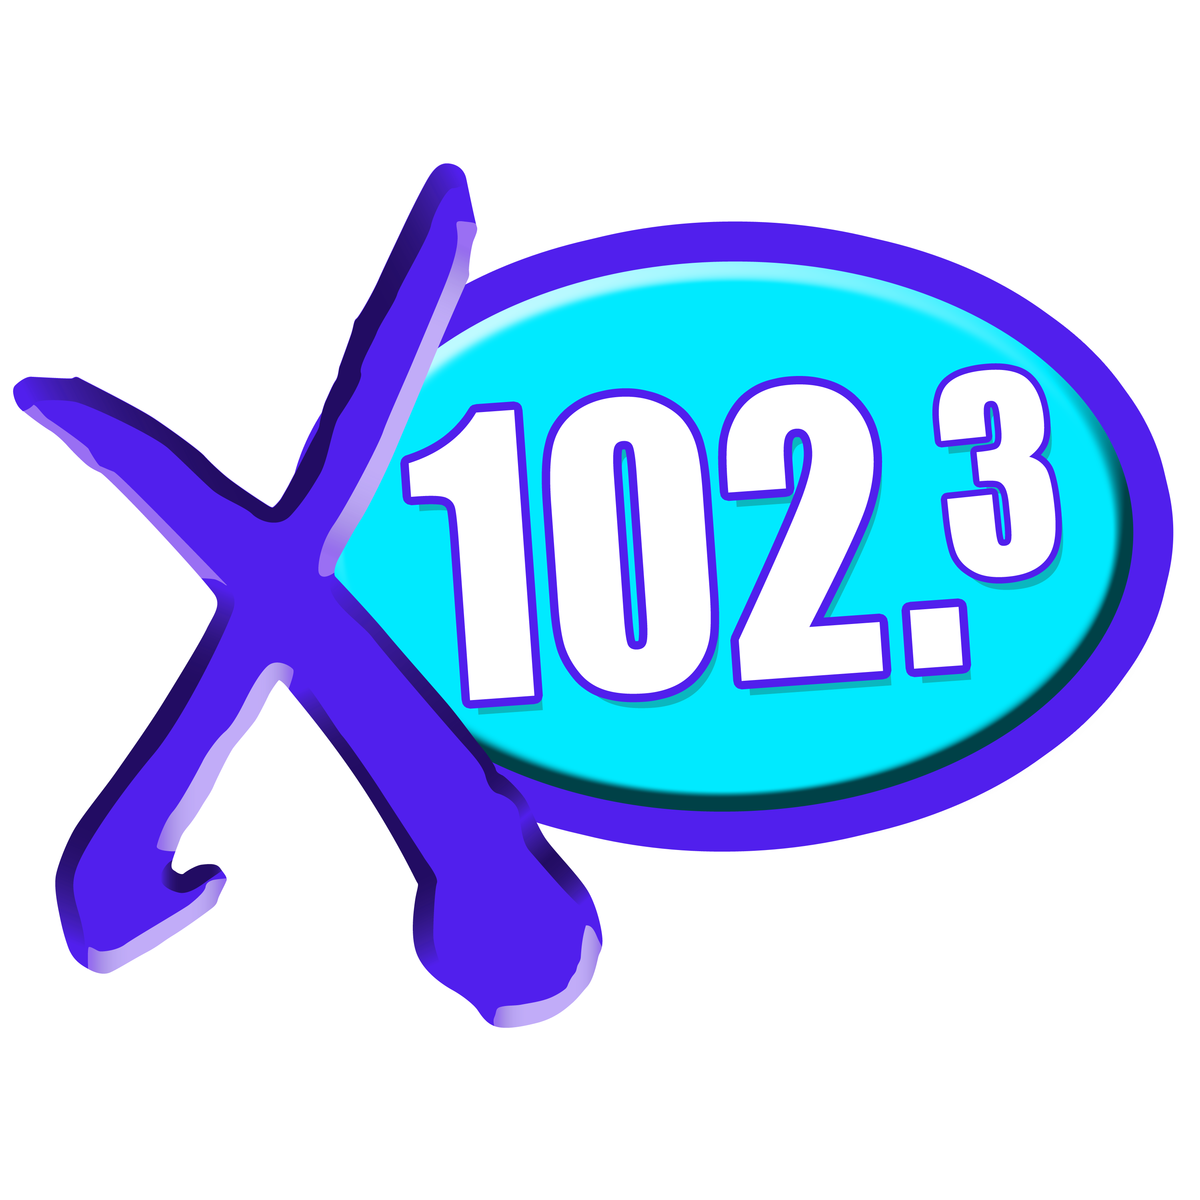 WMBX-fm_2013_NewLogo_preview.png